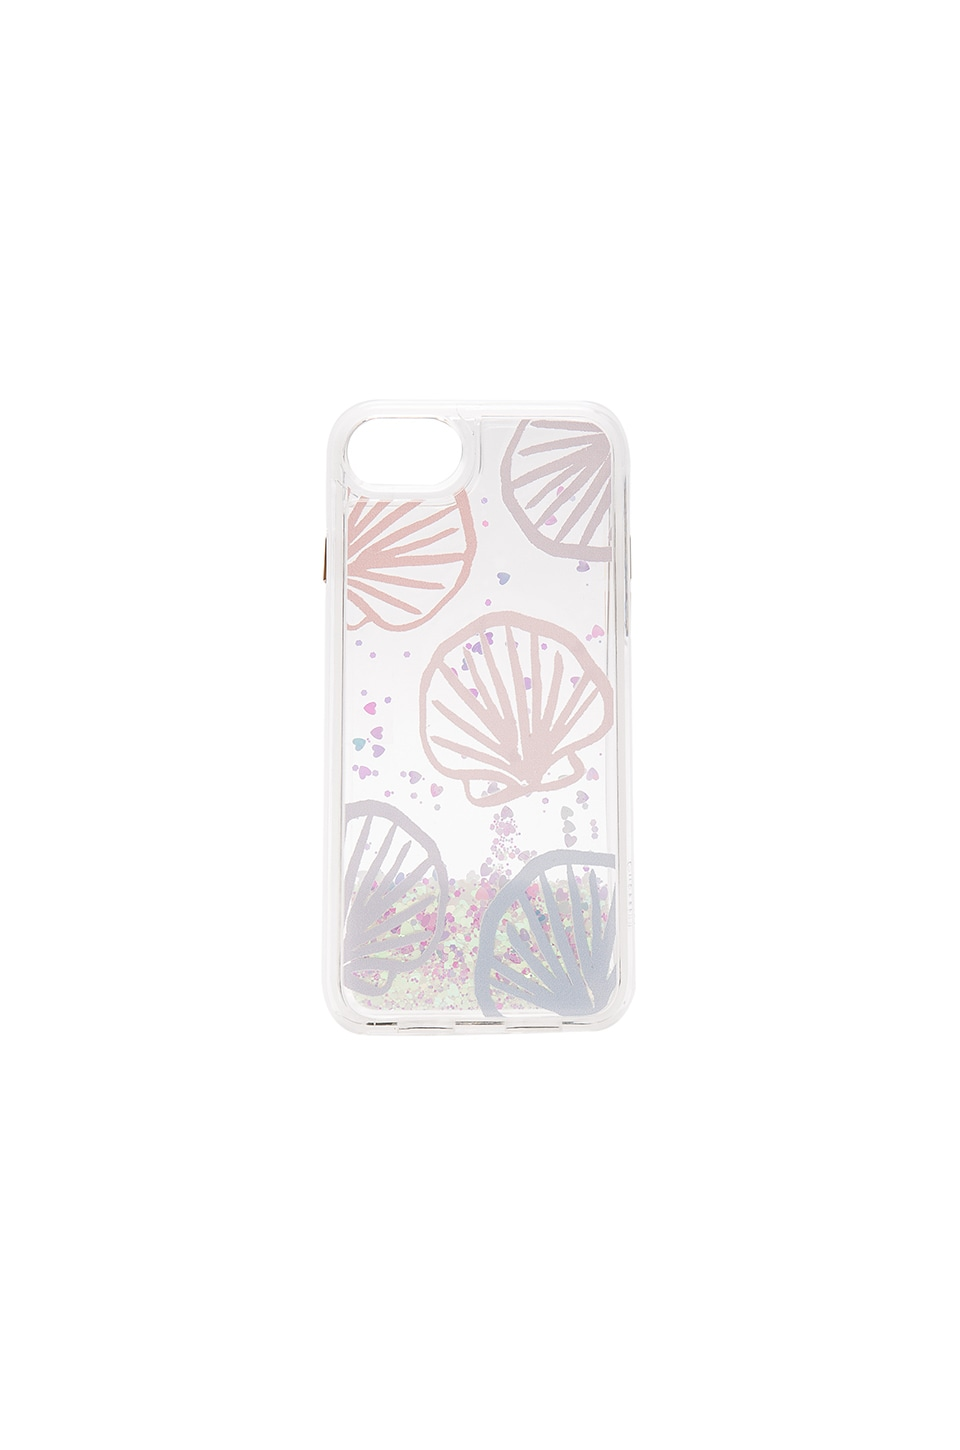 Casetify Seashell Scape iPhone 7 Glitter Case in Blue Pastel